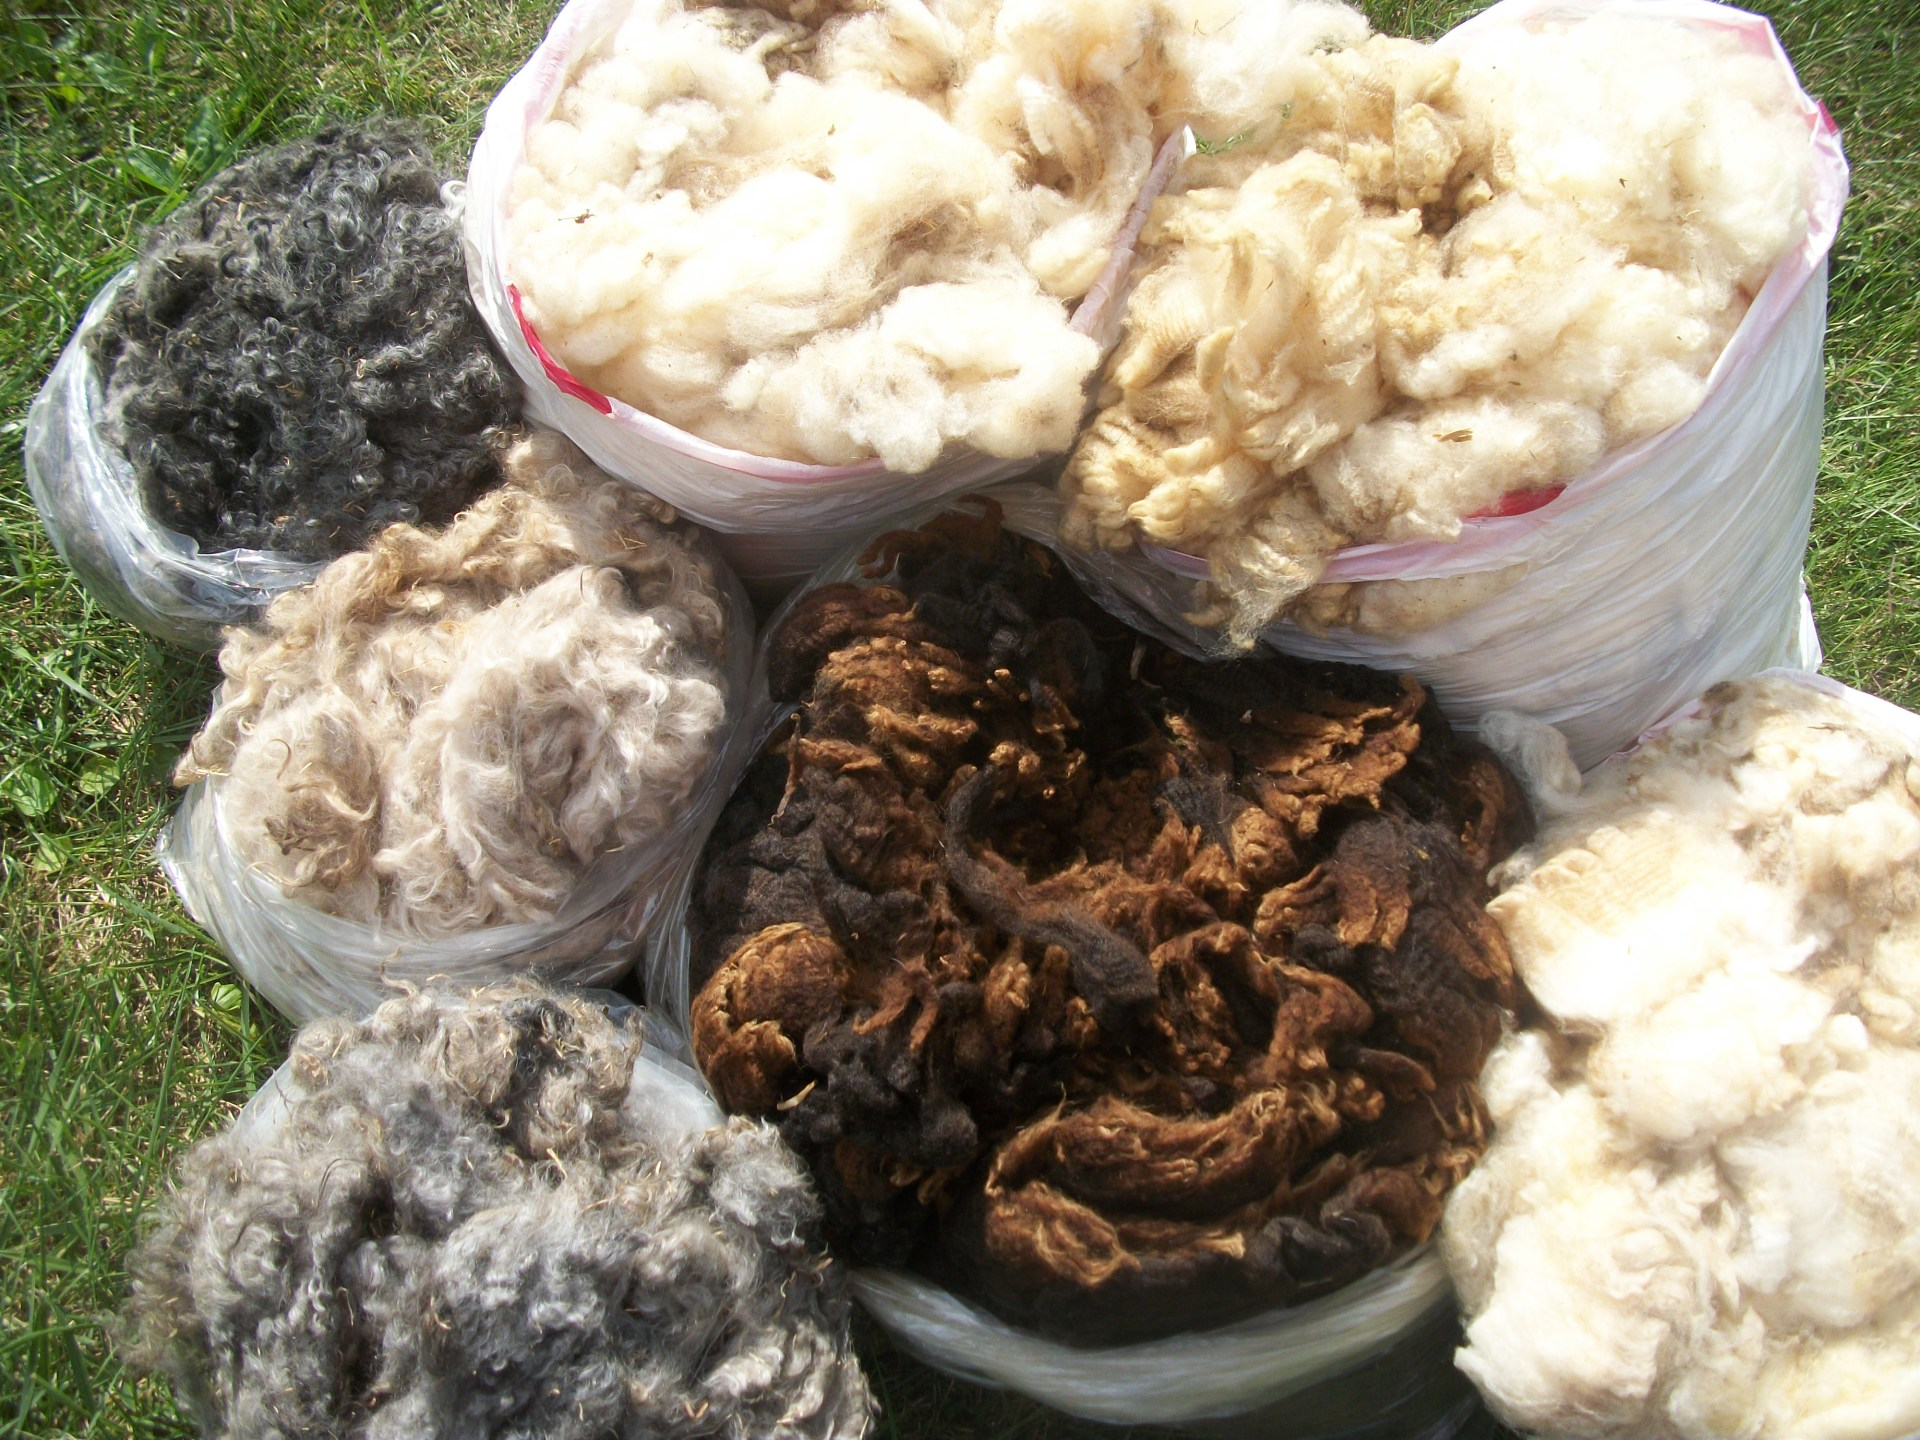 Advice on Washing Wool and Natural Fiber at Home